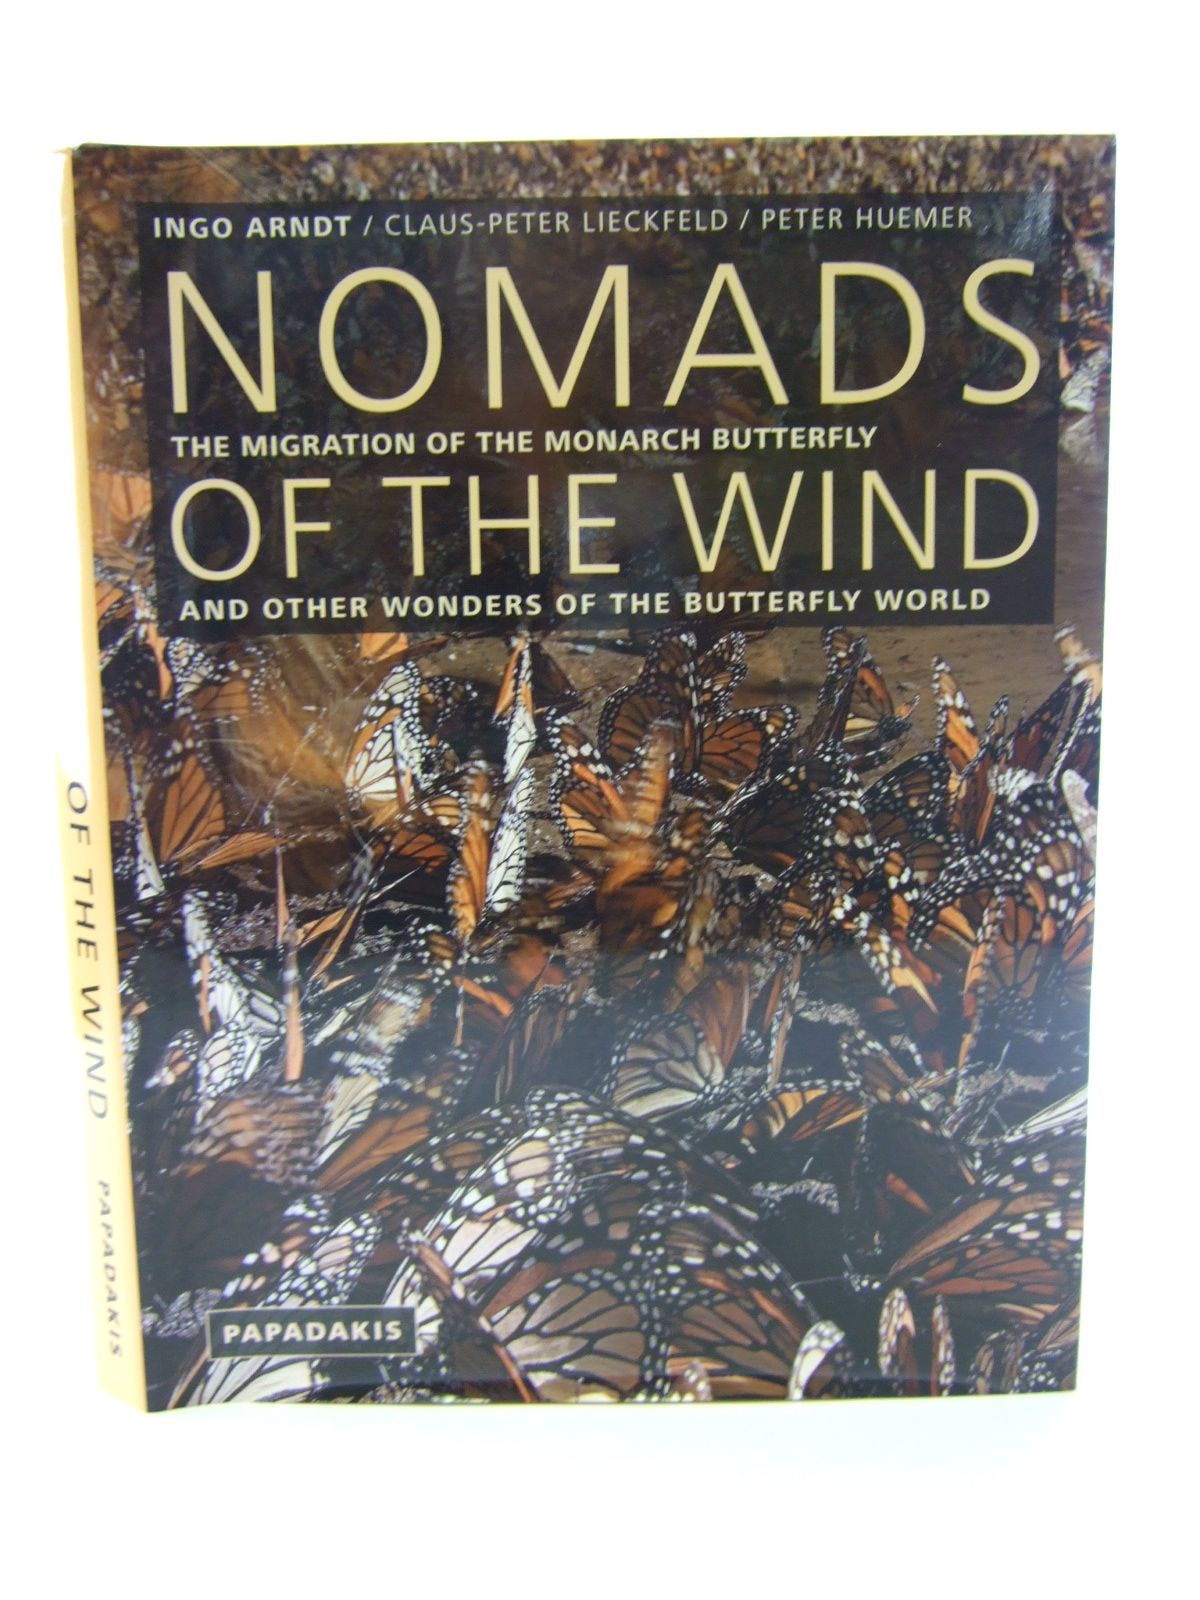 Photo of NOMADS OF THE WIND THE MIGRATION OF THE MONARCH BUTTERFLY AND OTHER WONDERS OF THE BUTTERFLY WORLD written by Arndt, Ingo<br />Lieckfeld, Claus-Peter<br />Huemer, Peter published by Papadakis (STOCK CODE: 1805386)  for sale by Stella & Rose's Books